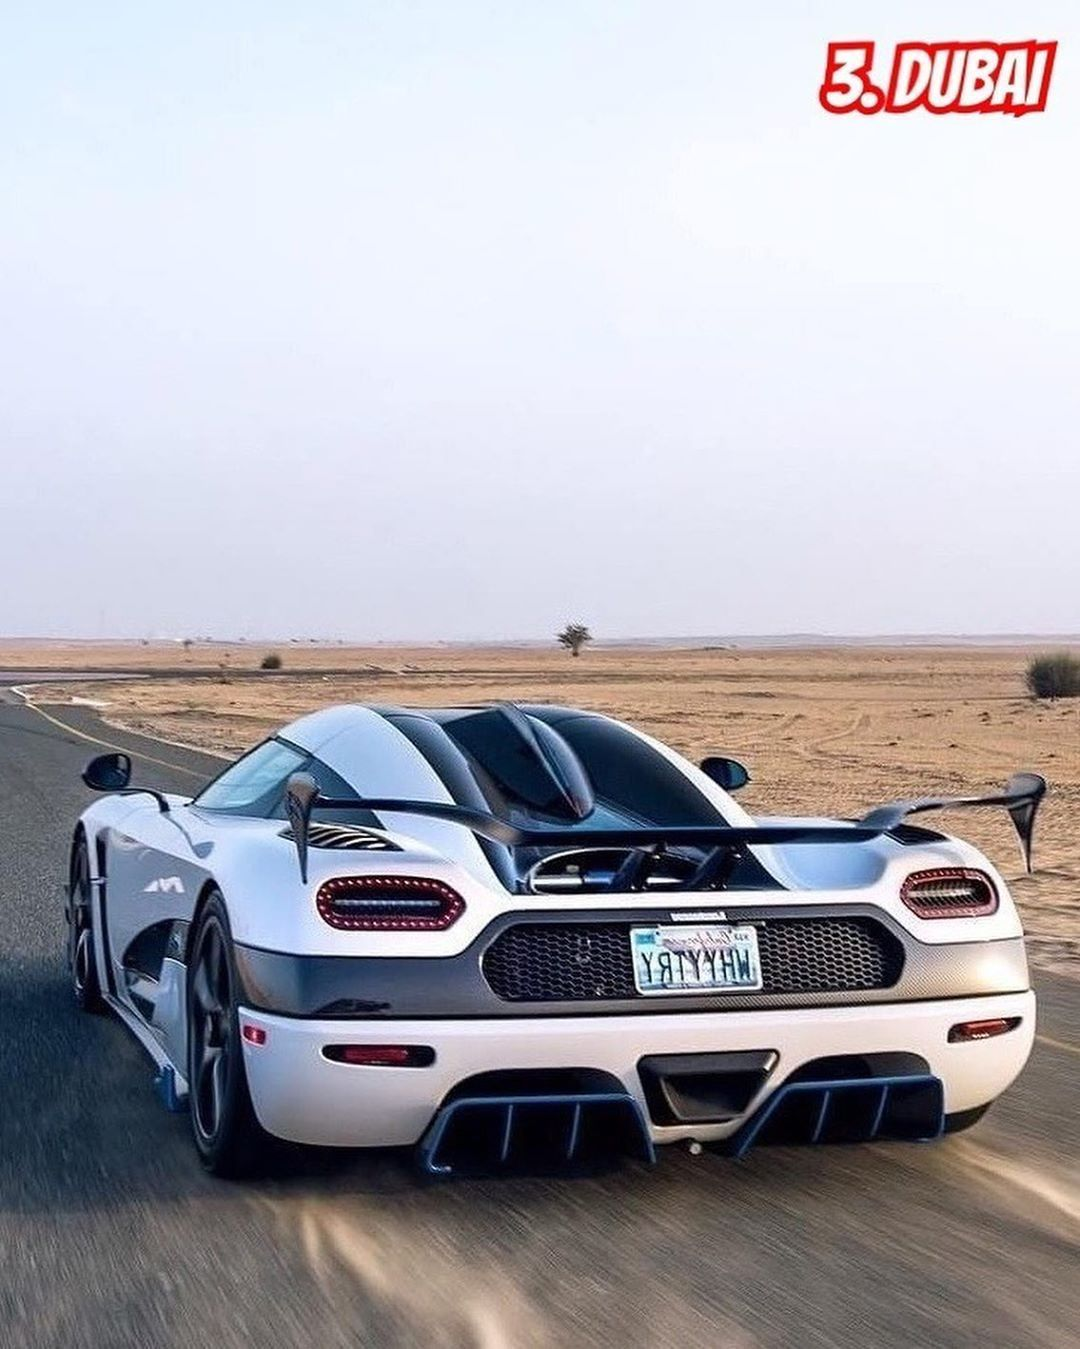 Carhoots The Hottest Most Social Viral Car Content On The Web In 2020 Car Photos Hd Amazing Cars Dodge Sports Car